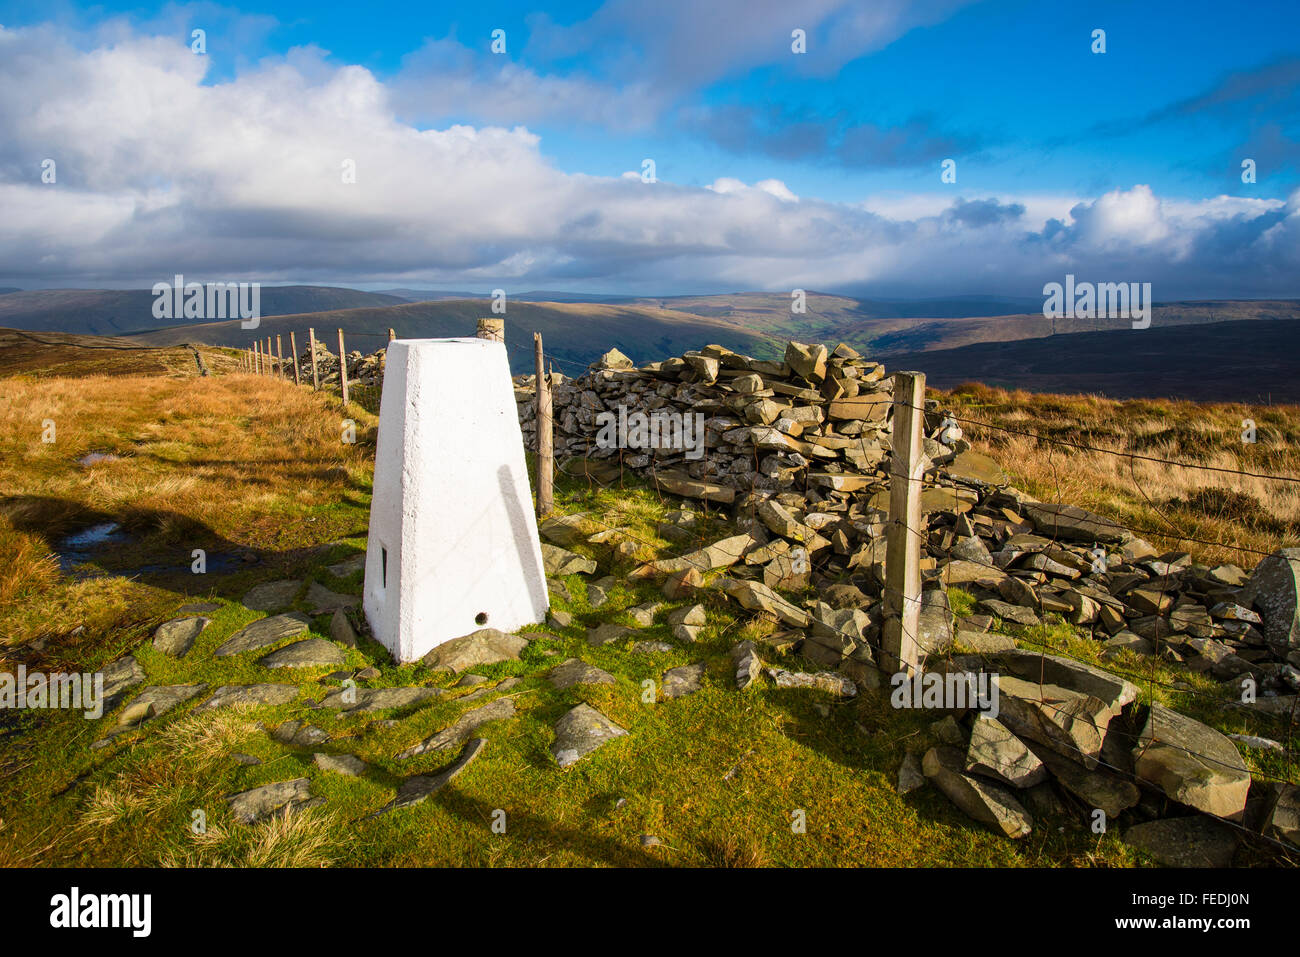 Summit of Middleton Fell Cumbria looking towards the Yorkshire Dales - Stock Image